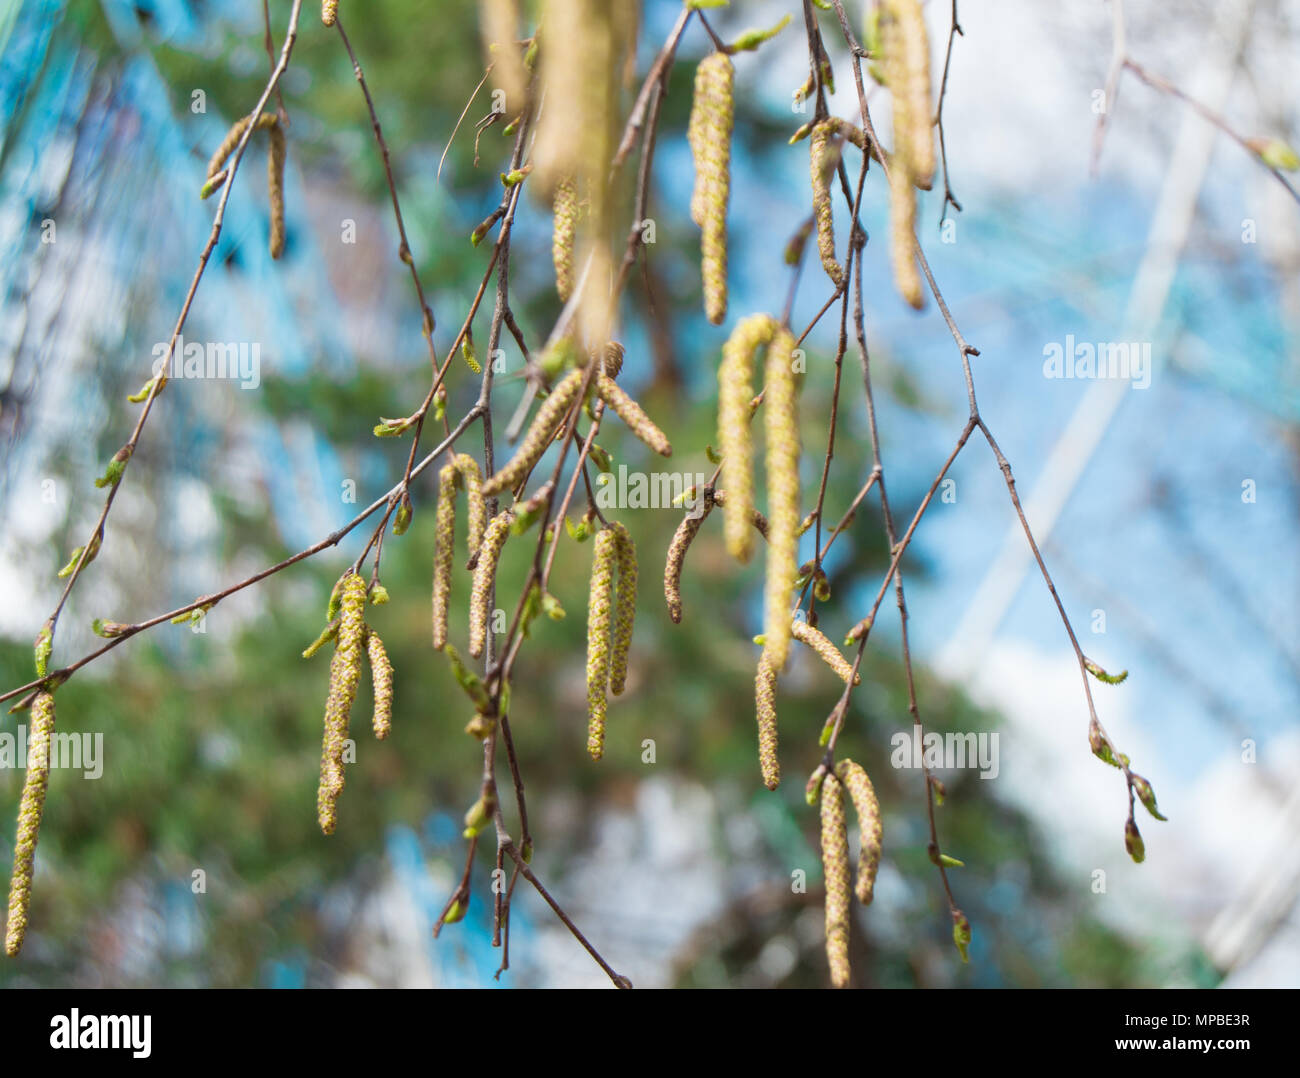 young birch branches with earrings, buds and leaves on blue sky background, selective focus Stock Photo